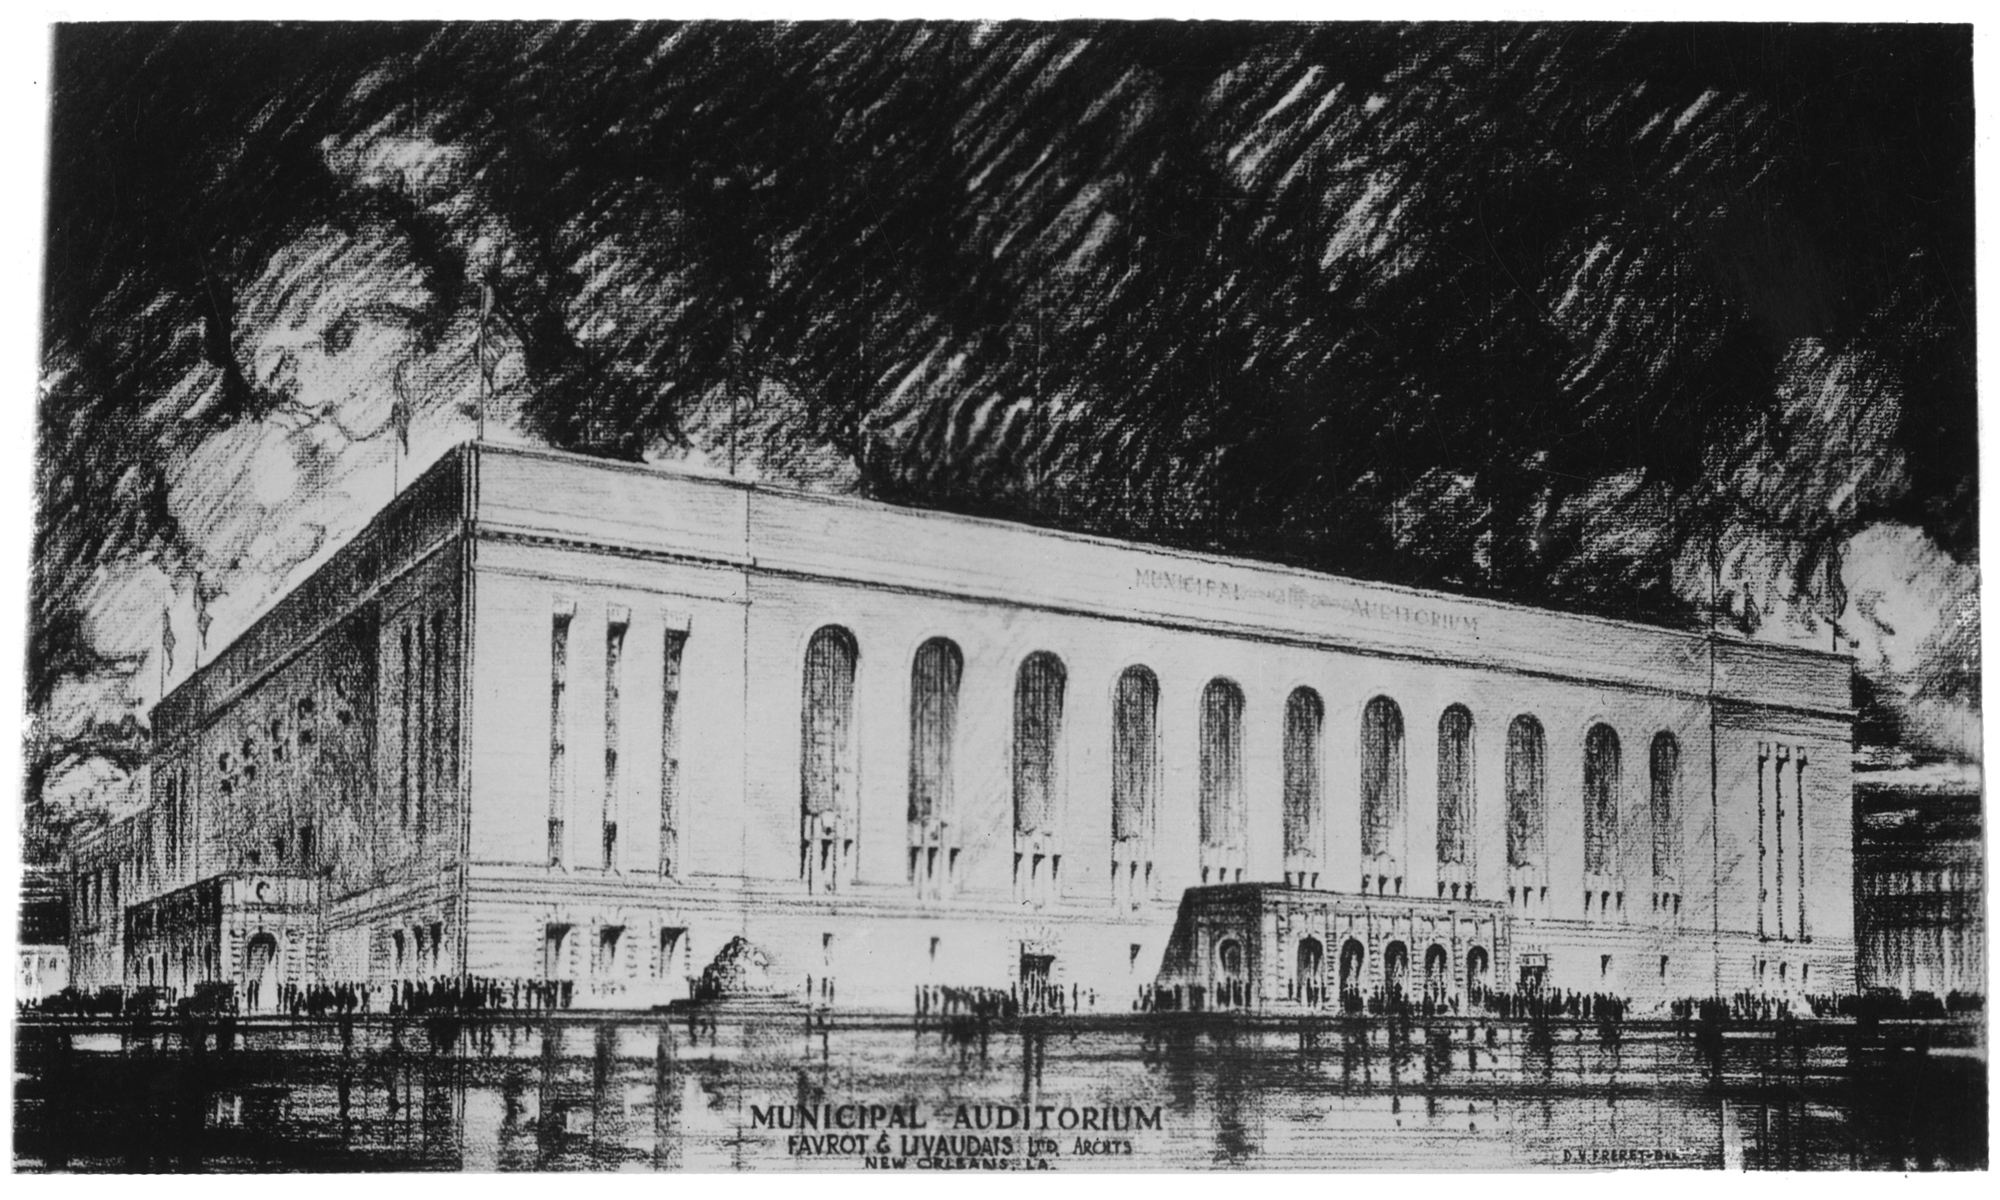 A grayscale illustration of the Municipal Auditorium rendered by The Charles L Franck Studio Collection at the Historic New Orleans Collection. It shows the long, light building, and the sky around it is shaded dark gray.